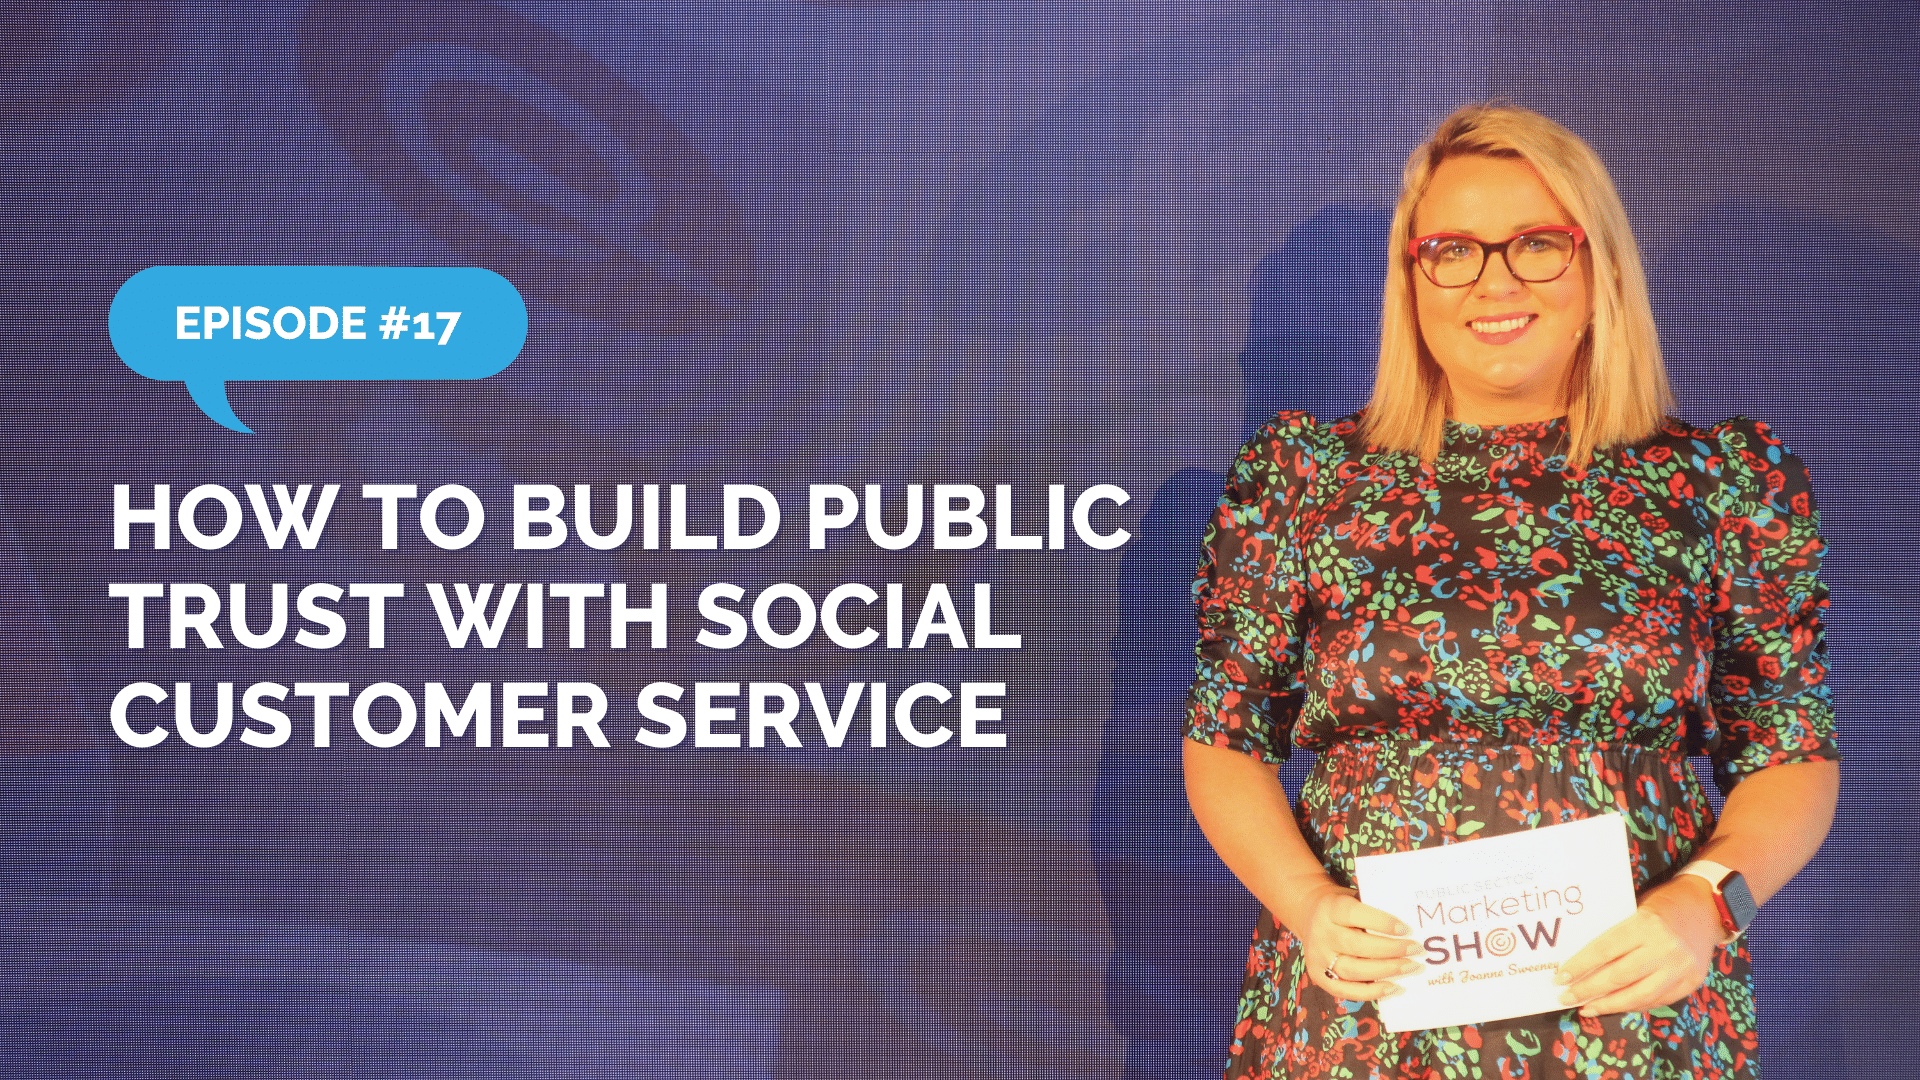 Episode 17 - How to Build Public Trust with Social Customer Service